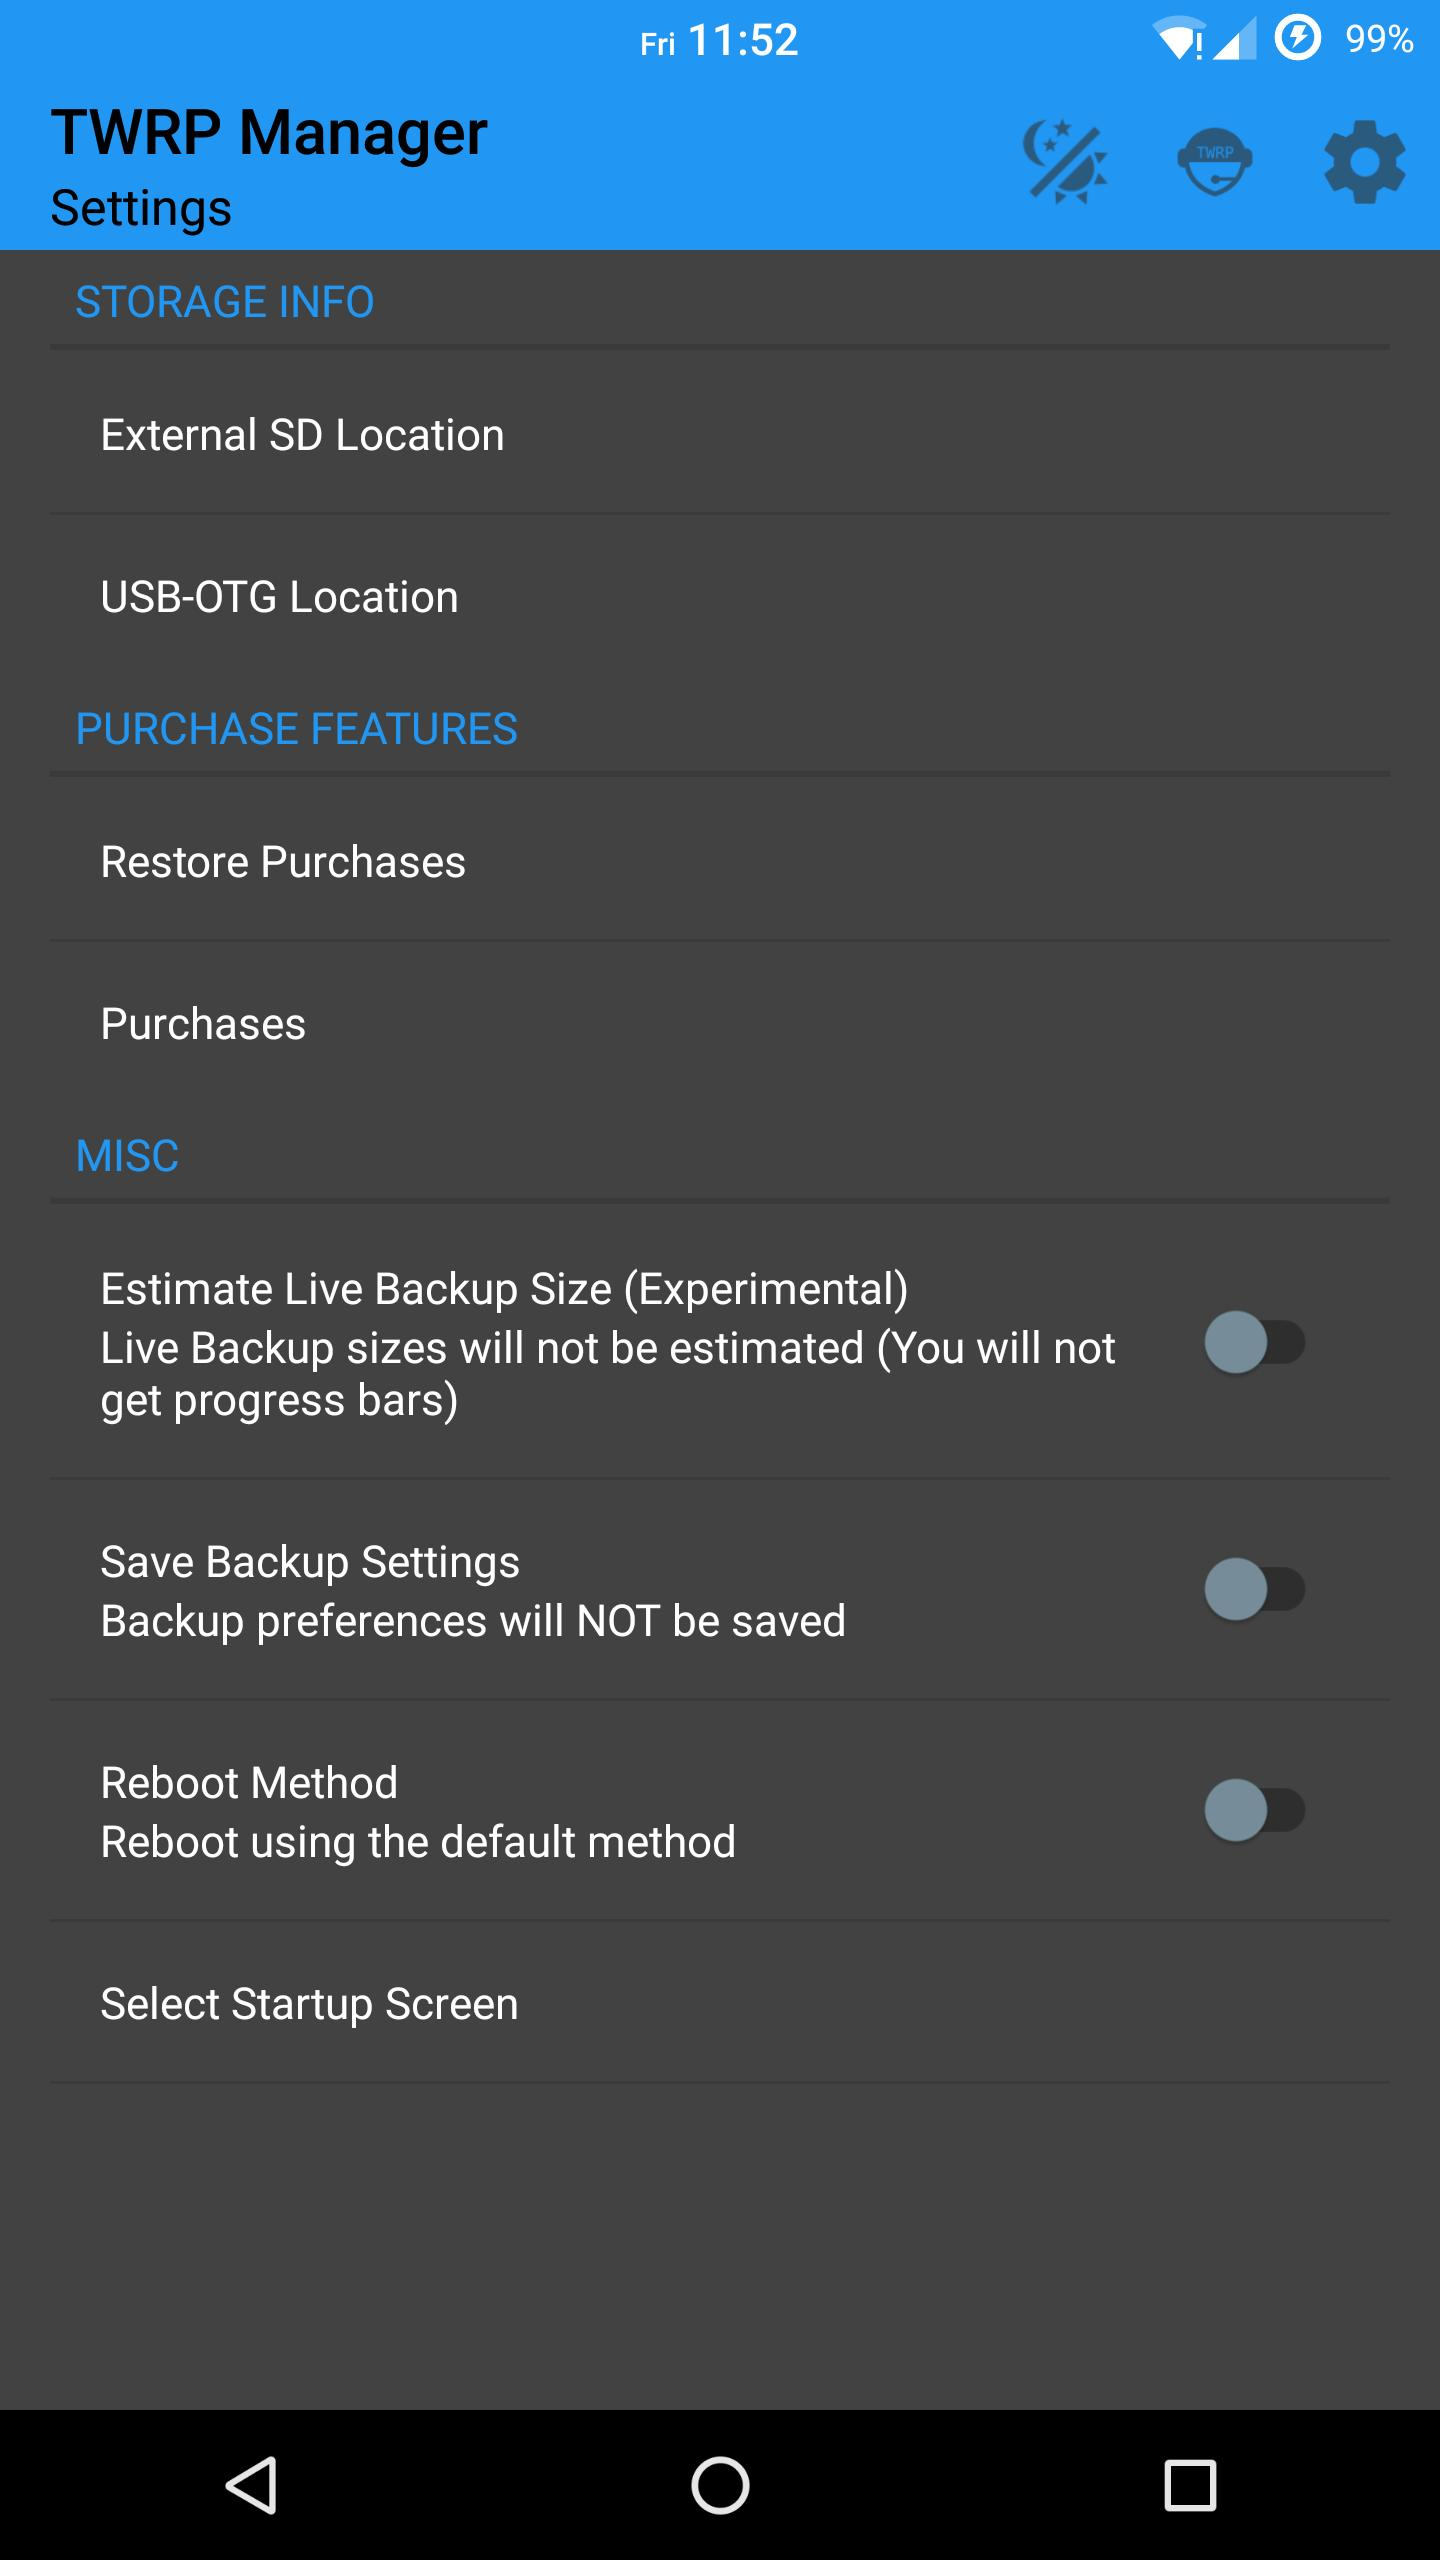 TWRP Manager for Android - APK Download